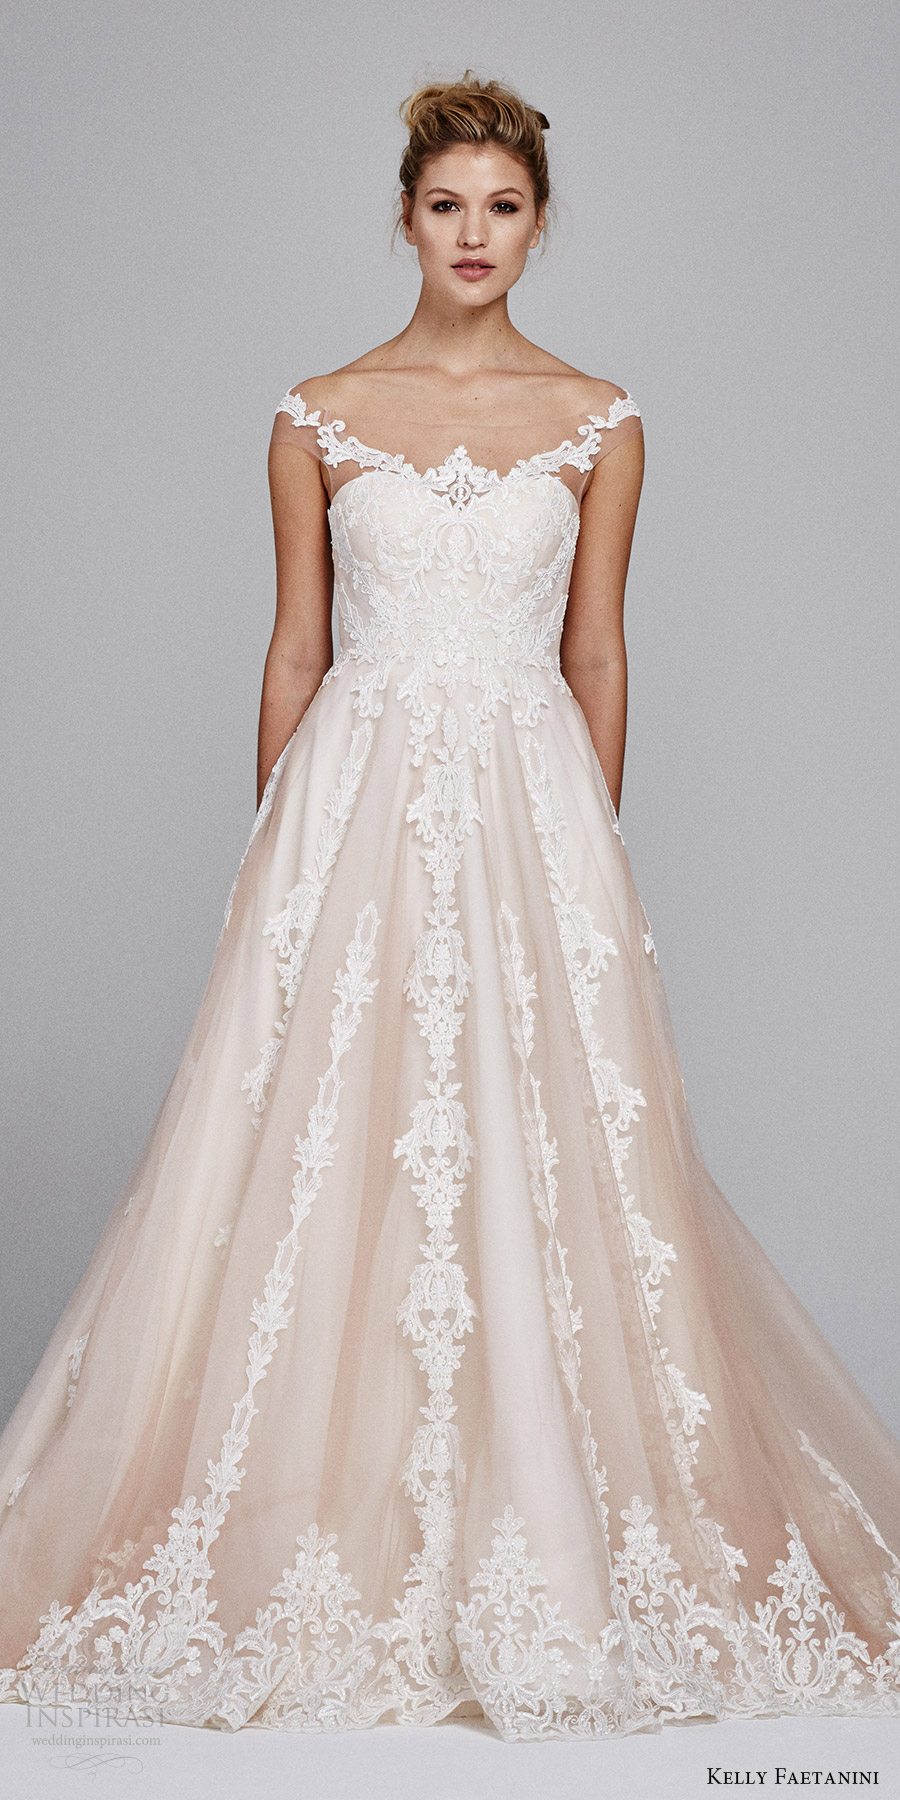 kelly faetanini bridal fall 2017 illusion off shoulder sweetheart blush alencon lace ball gown wedding dress (suri) zfv